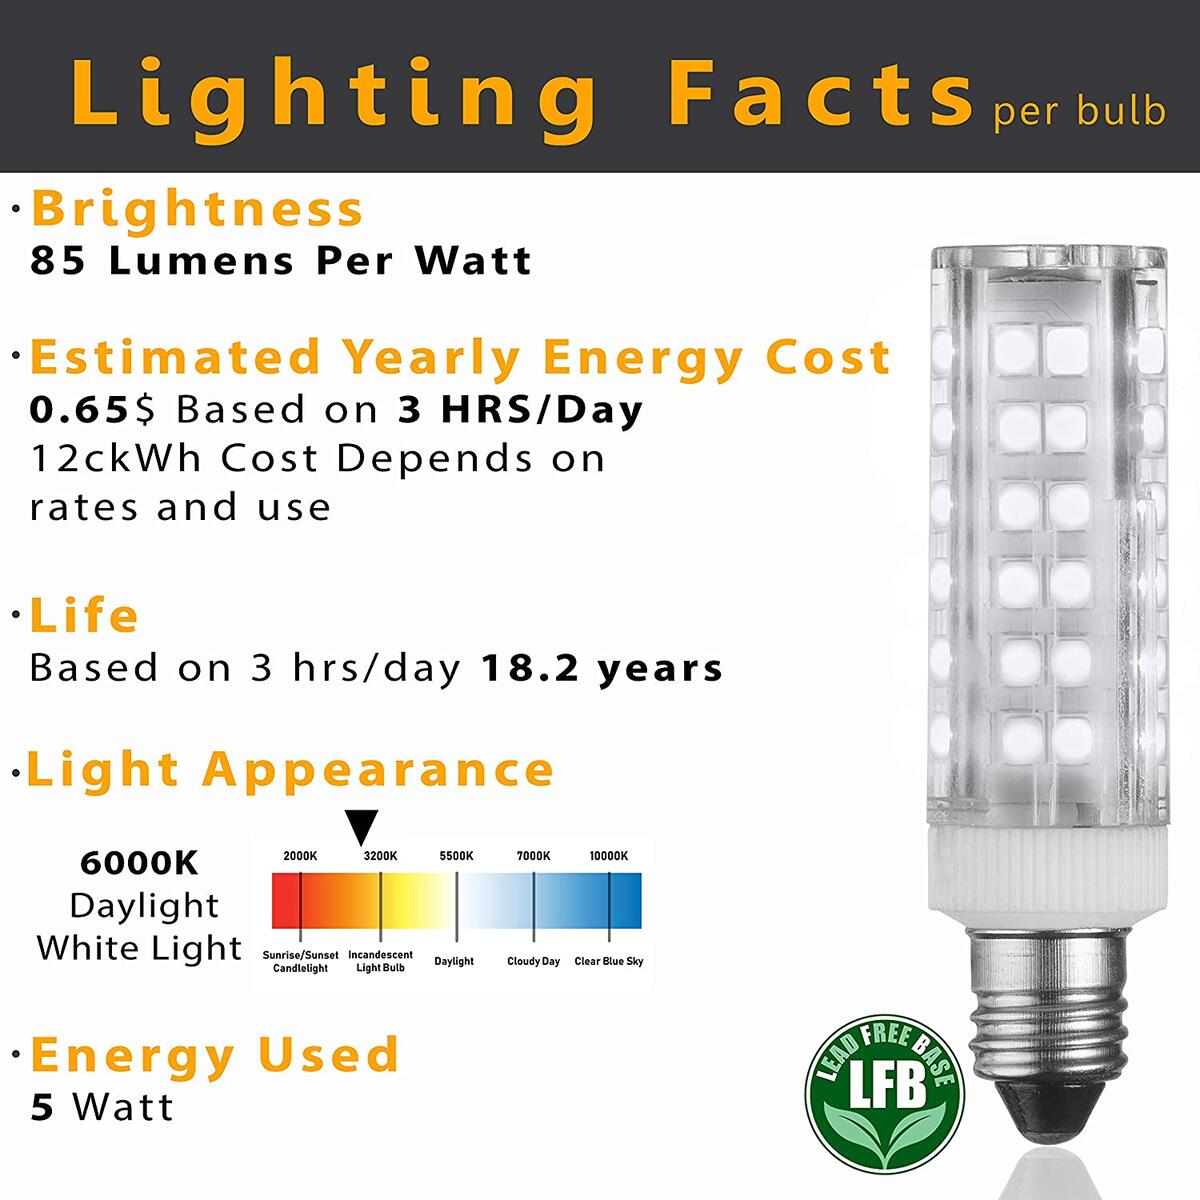 E11 LED Bulbs – 5W - 50W Halogen Replacement - Dimmable - Mini-Candelabra Base Light Bulb - Replaces T4 /T3 JDE11 – Day Light 6000K - for Ceiling Fans, Cabinet Lighting, Sconce & More- 6 Pack